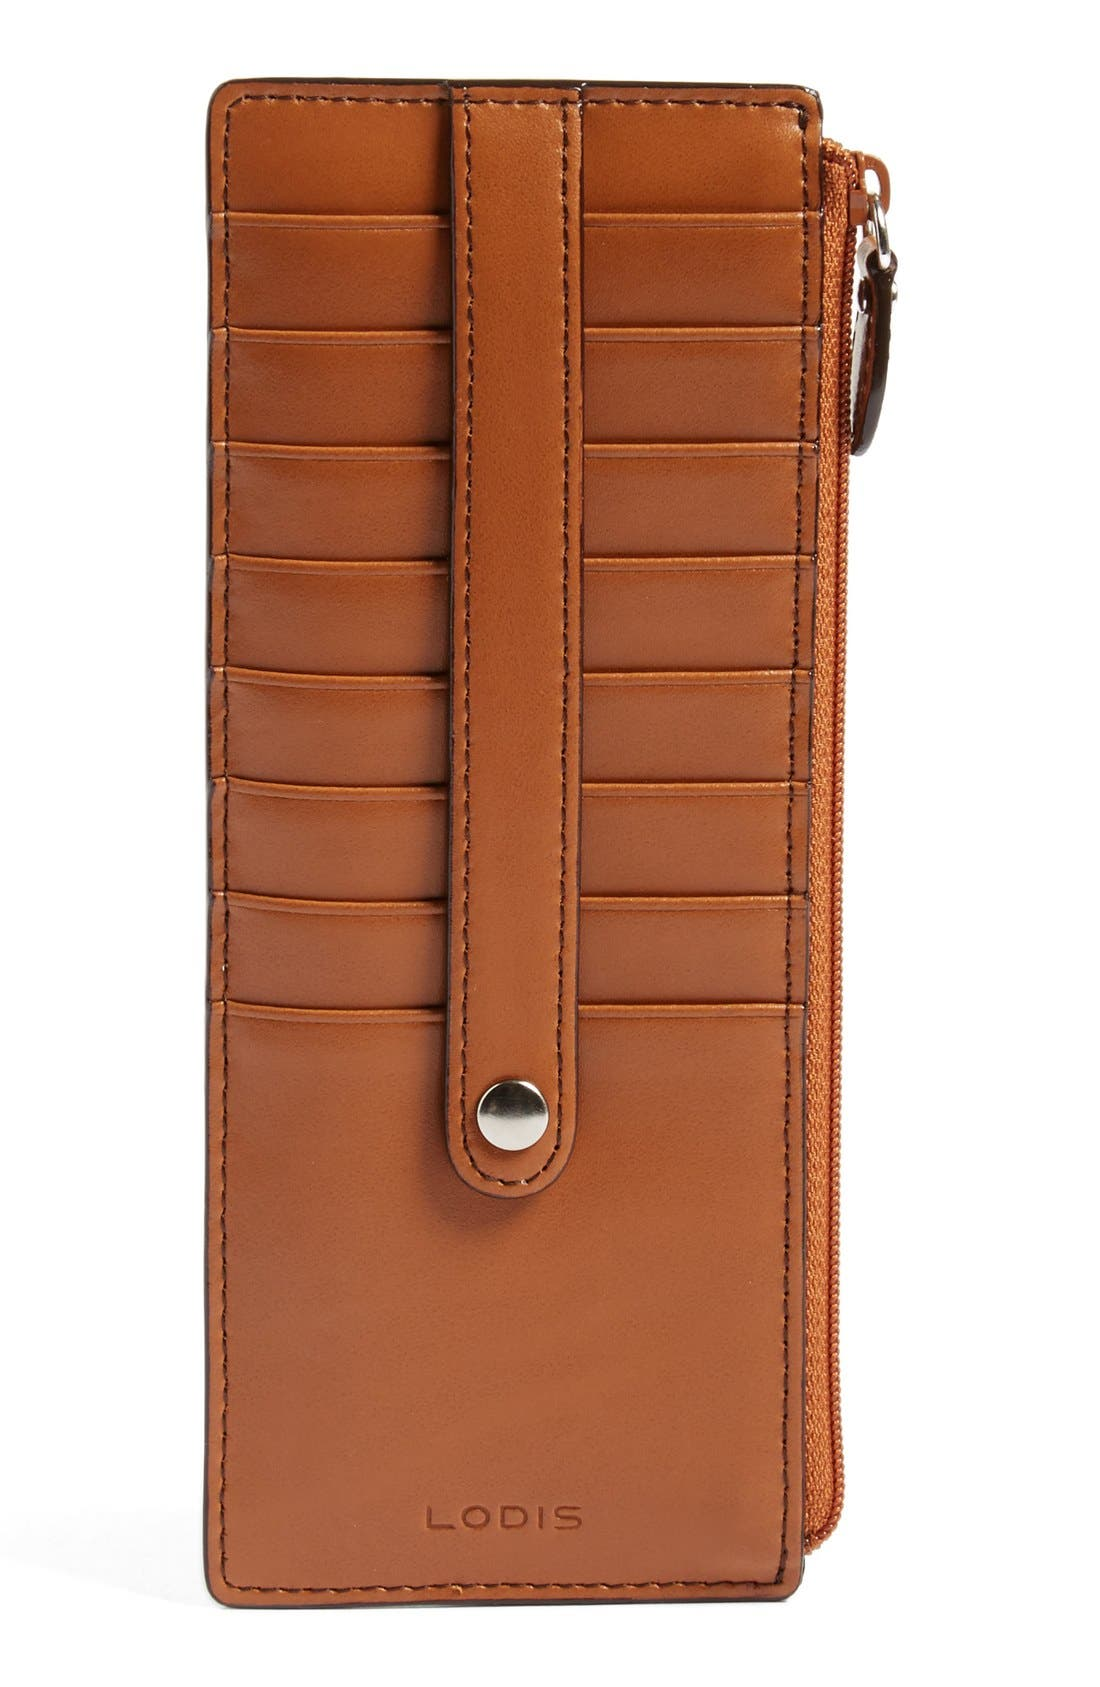 Lodis Audrey RFID Leather Credit Card Case (Nordstrom Exclusive)